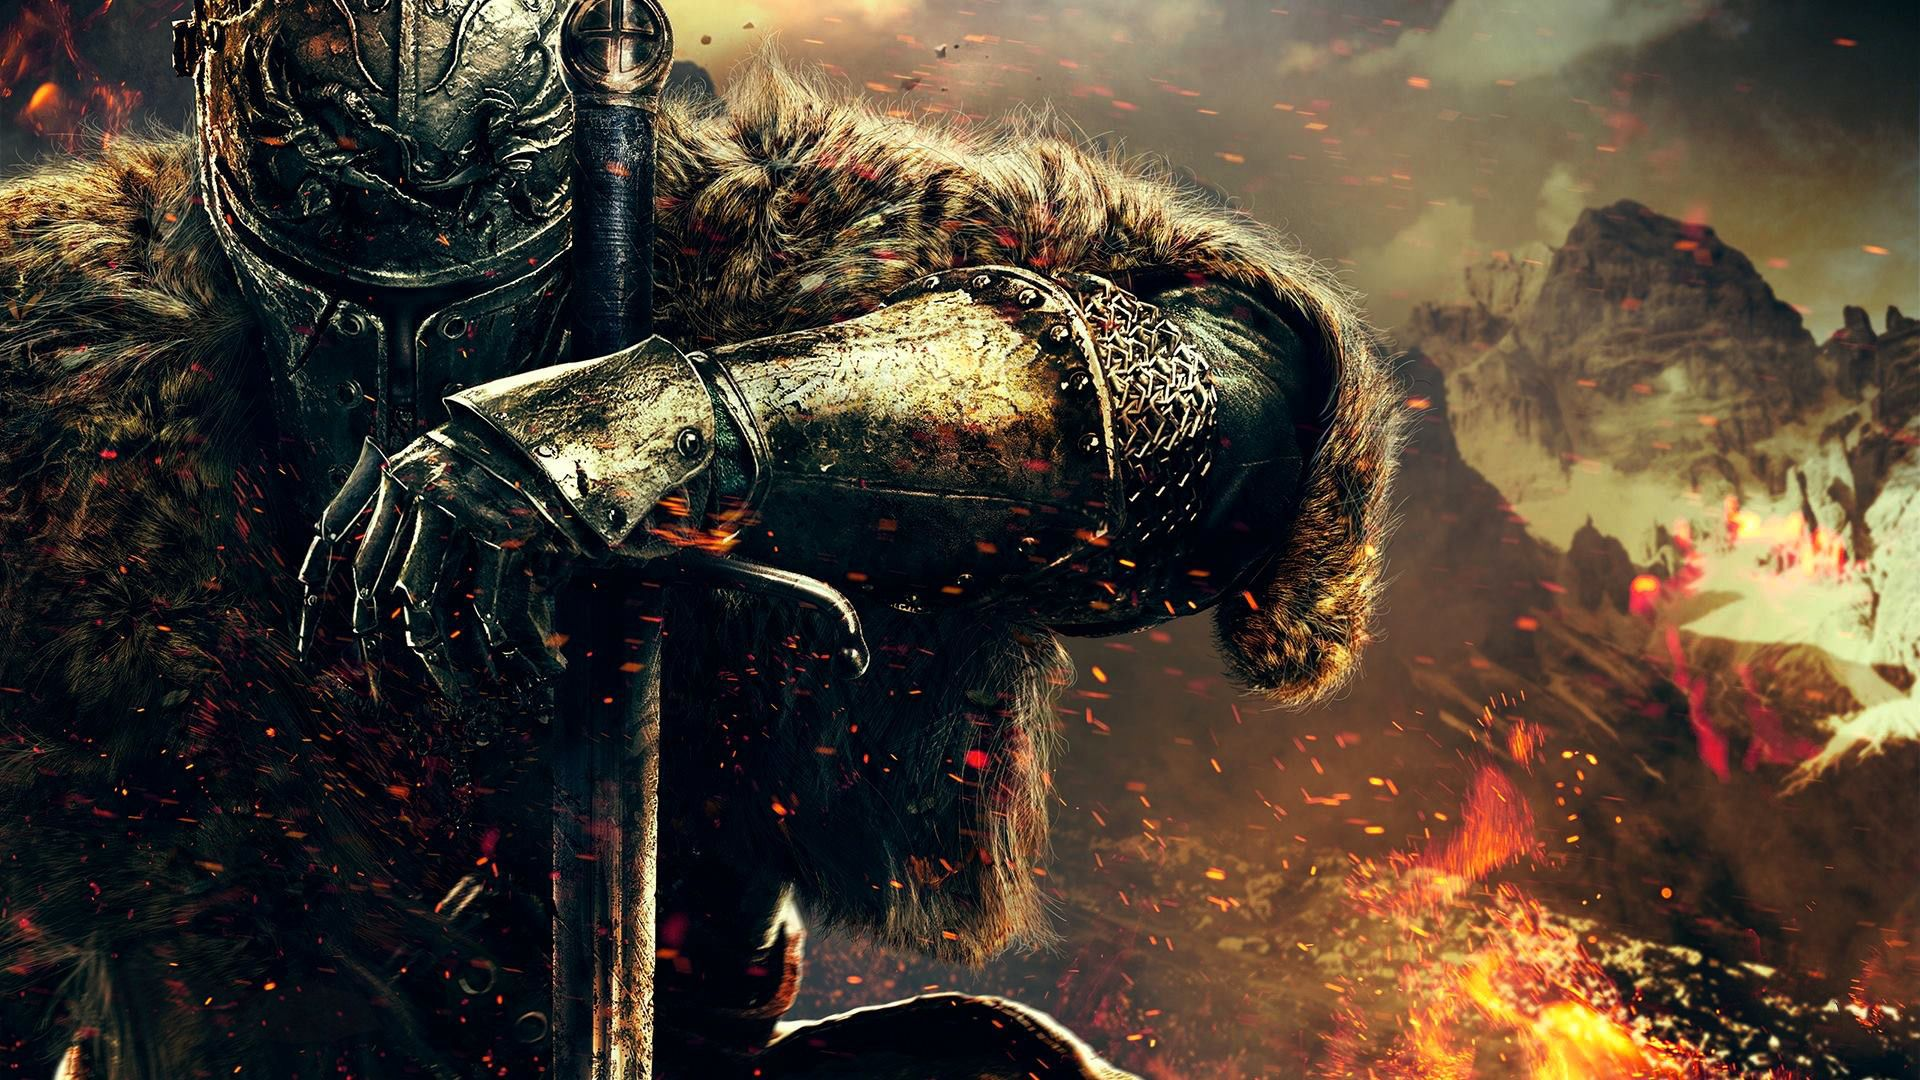 Dark Souls 2 Wallpapers Top Free Dark Souls 2 Backgrounds